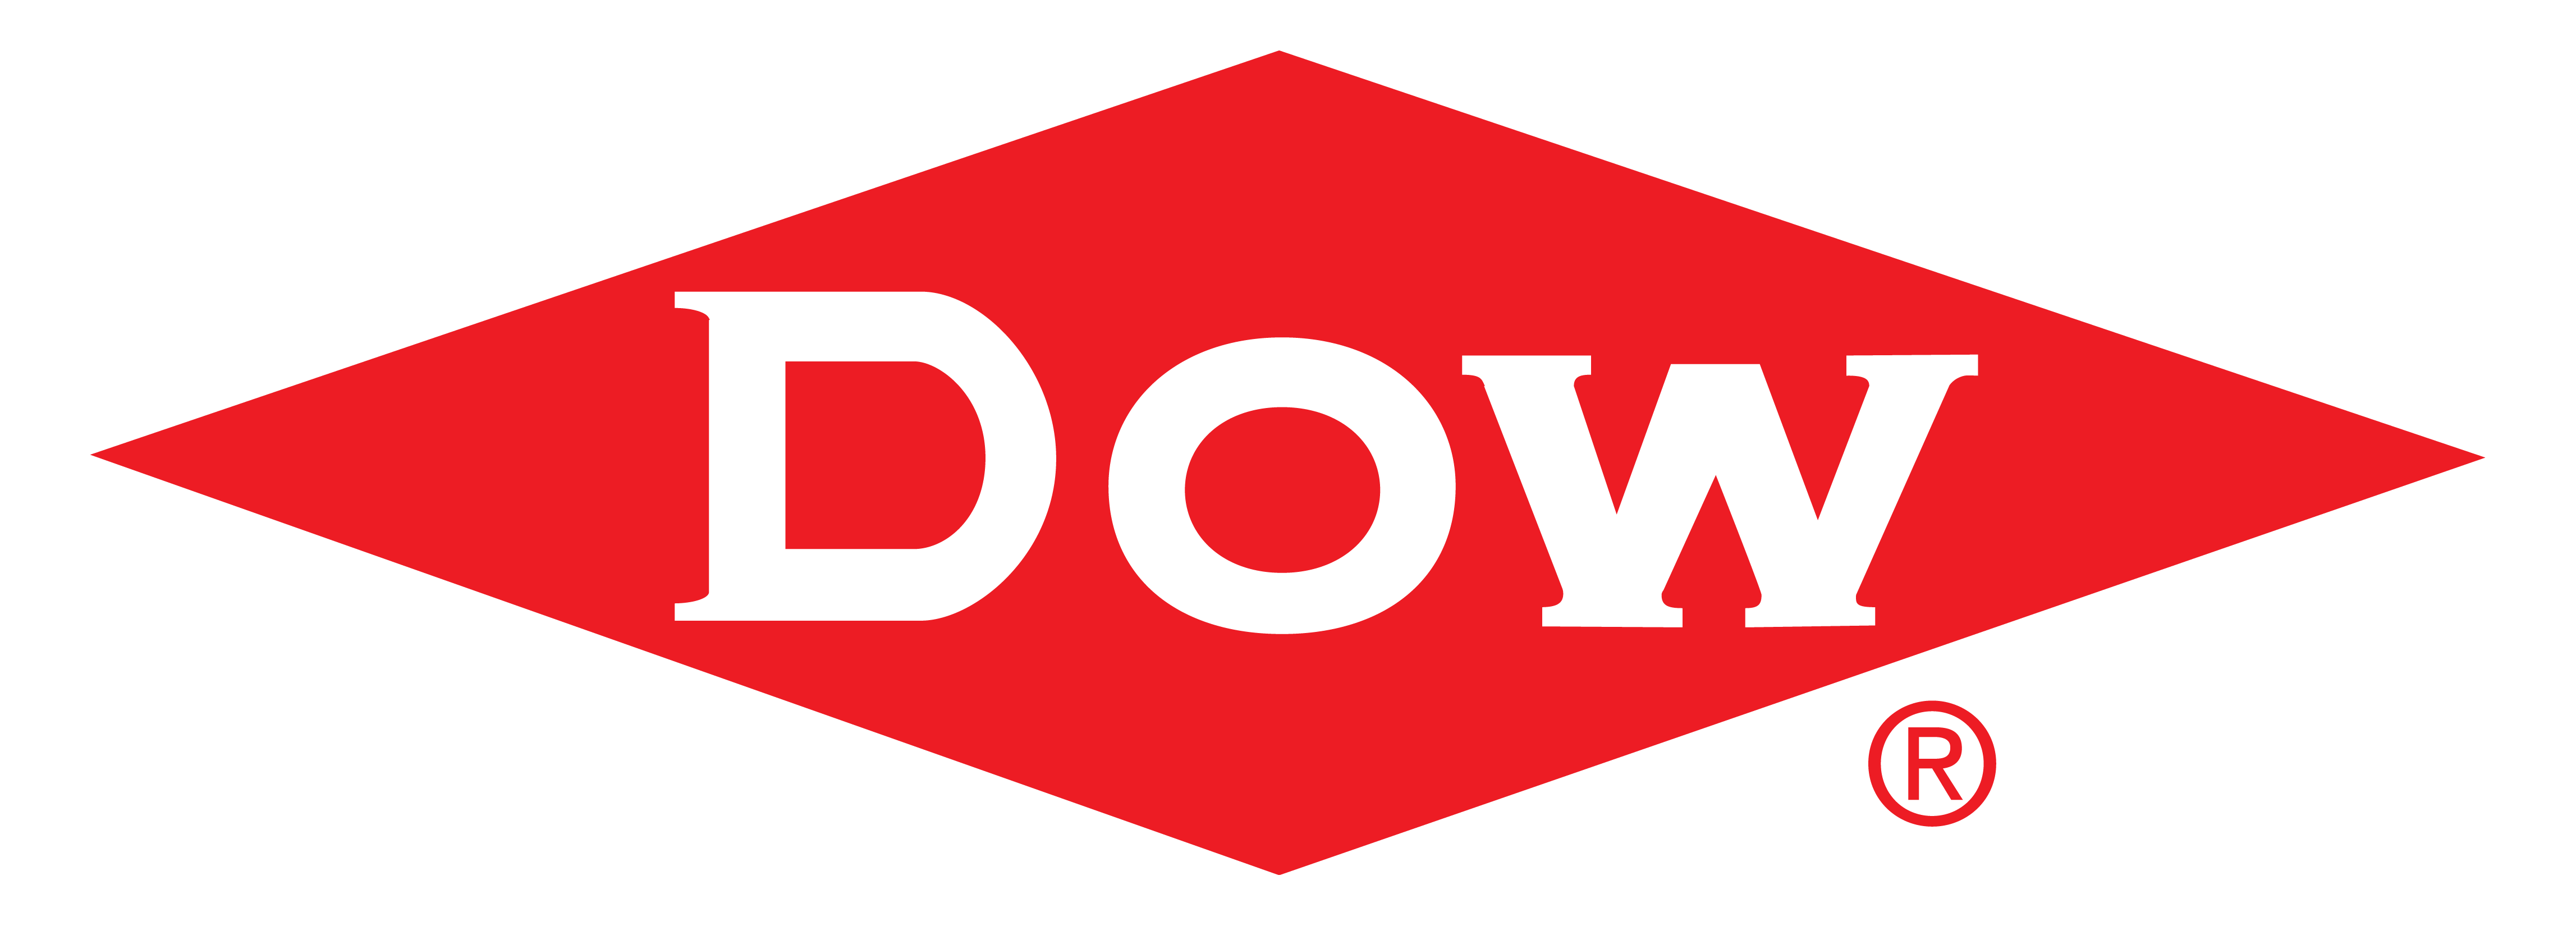 Dow-Logo-PNG-Transparent